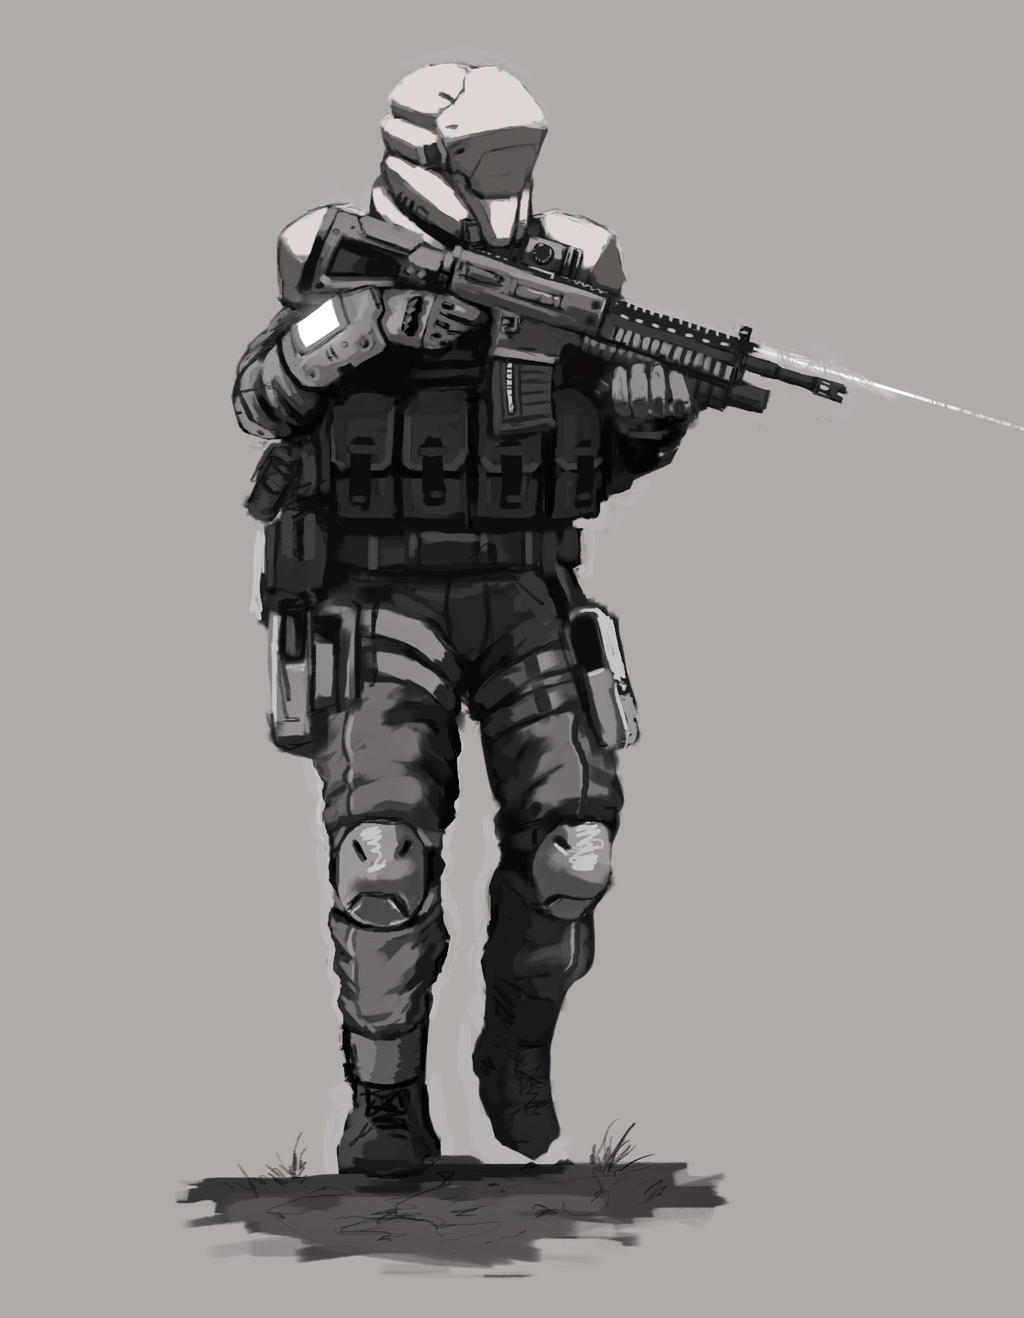 Future Assault Trooper concept art by FonteArt